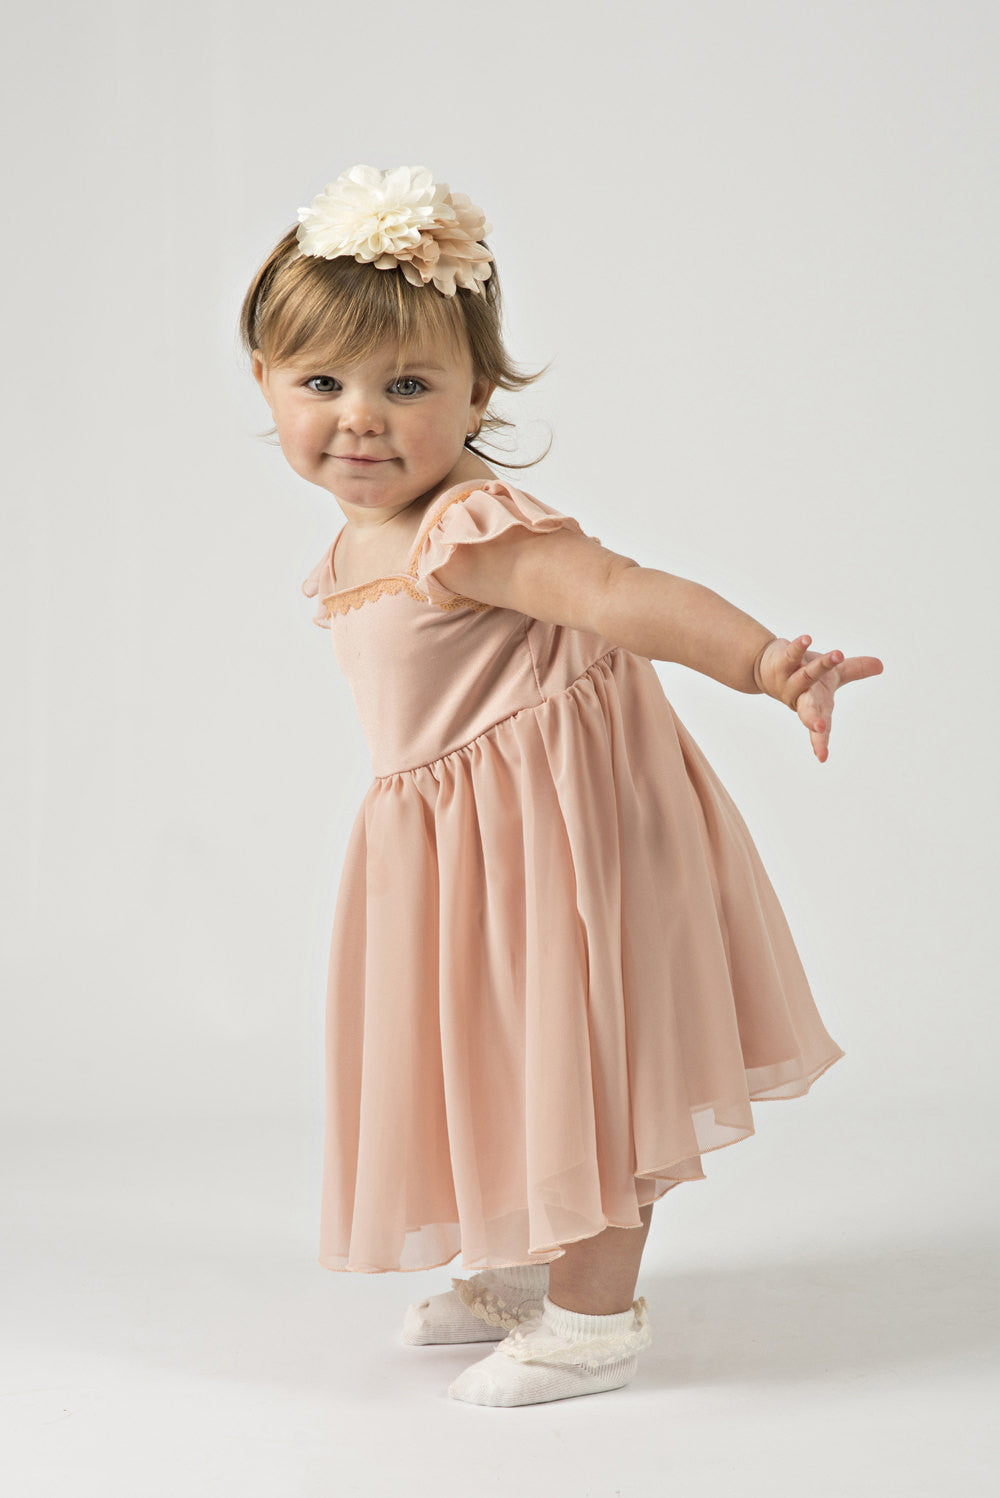 f04243e87d Flower Girl Dress Coral for Baby or Toddler in Chiffon with Cap Sleeves -  The